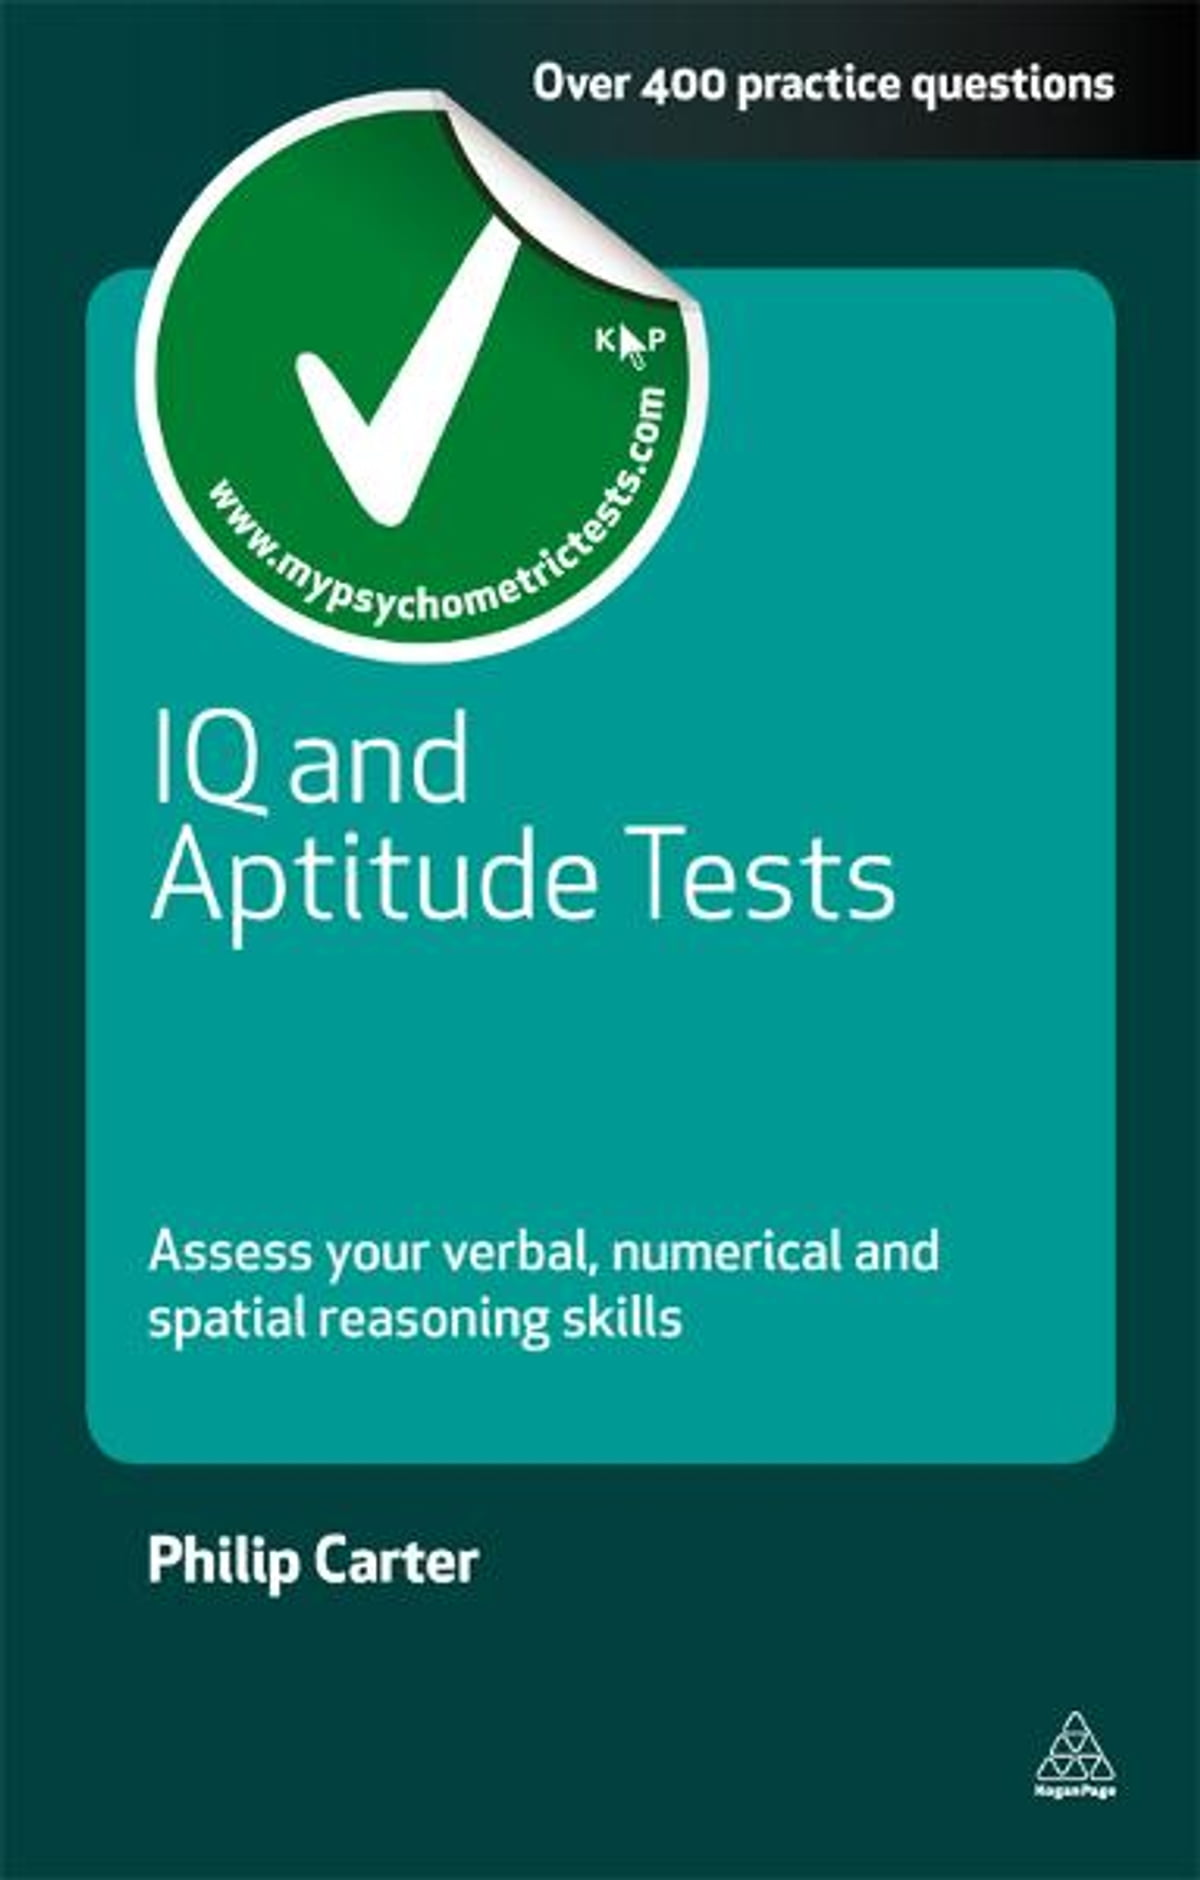 IQ and Aptitude Tests: Assess Your Verbal Numerical and Spatial Reasoning  Skills eBook by Philip Carter - 9780749461997 | Rakuten Kobo